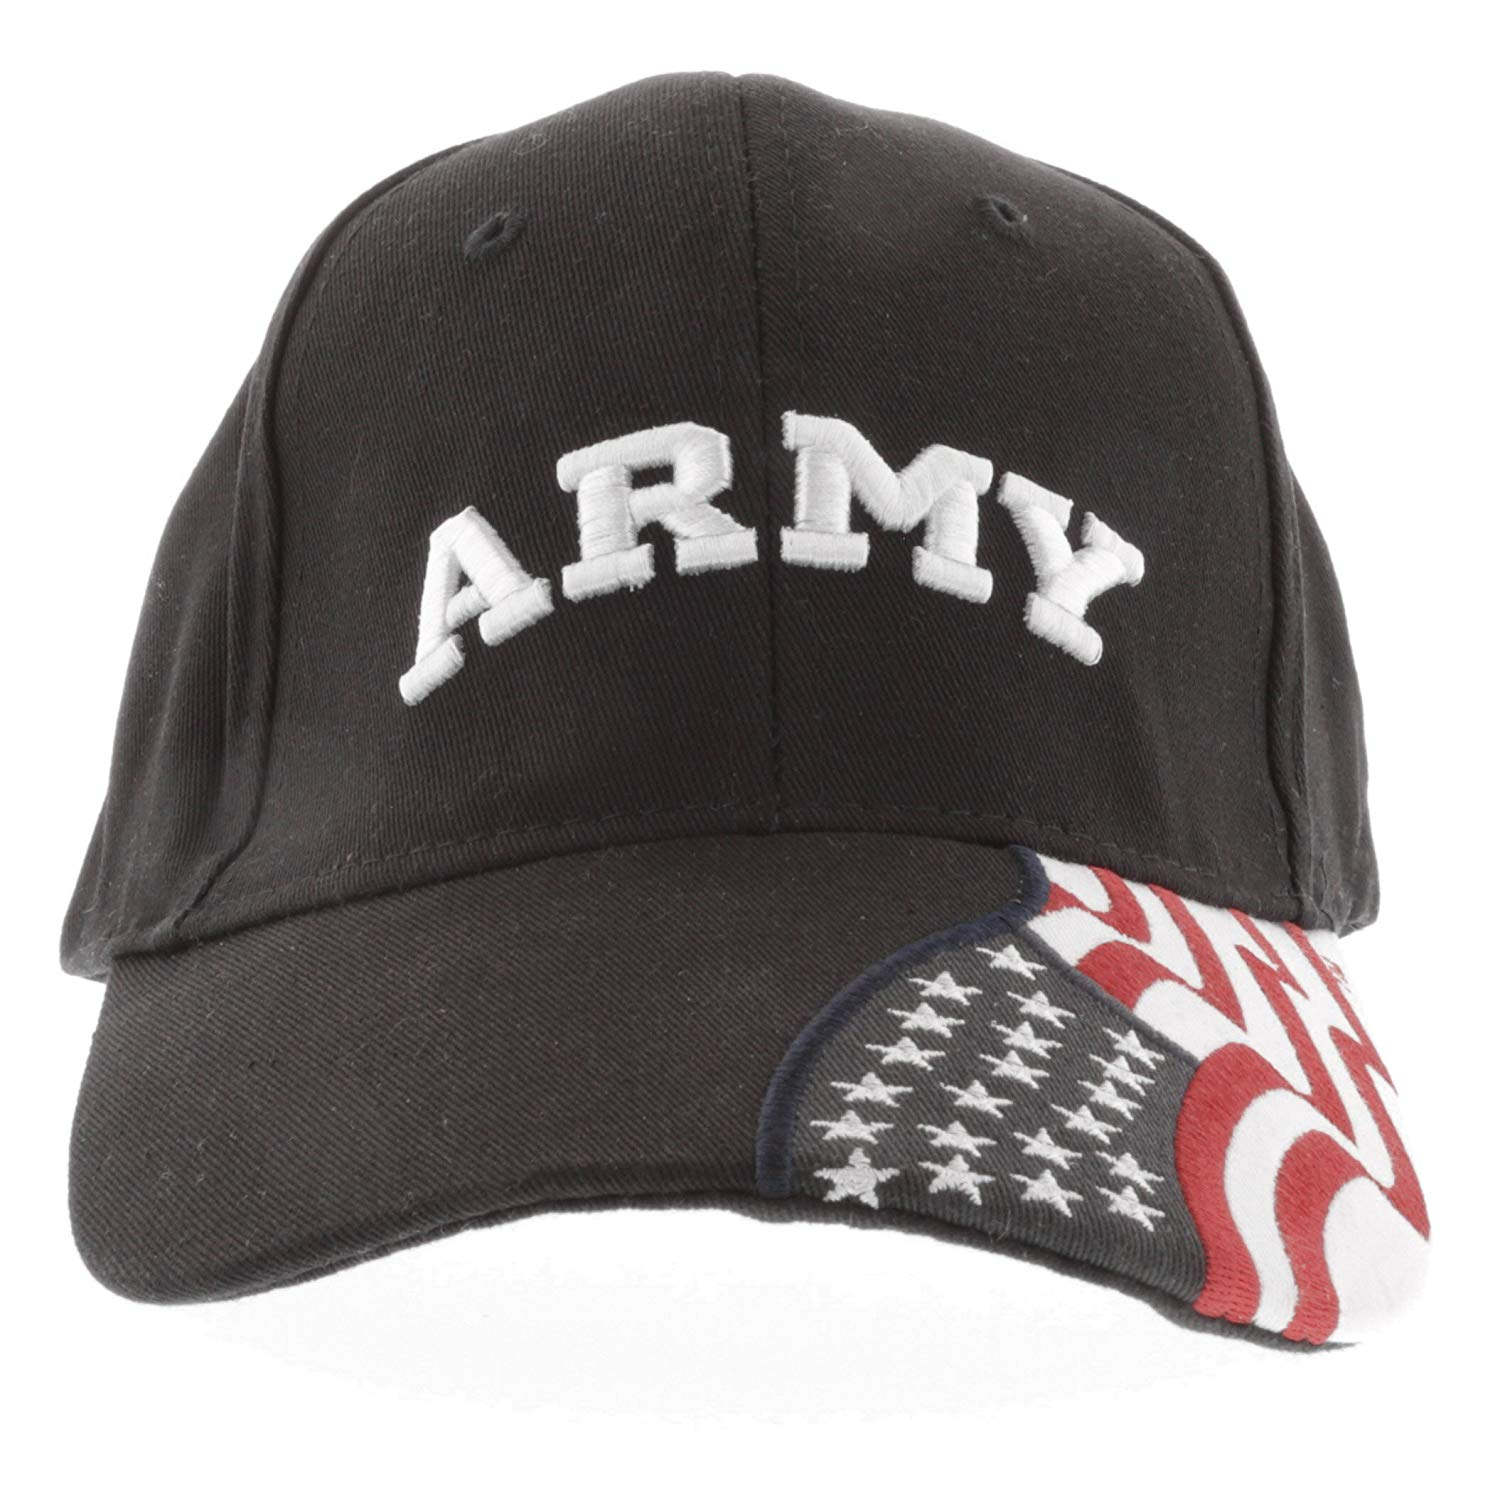 a1725453bdc Get Quotations · ARMY 3D Embroidered Baseball Cap with The American Flag  USA Adjustable Cap 100% Cotton